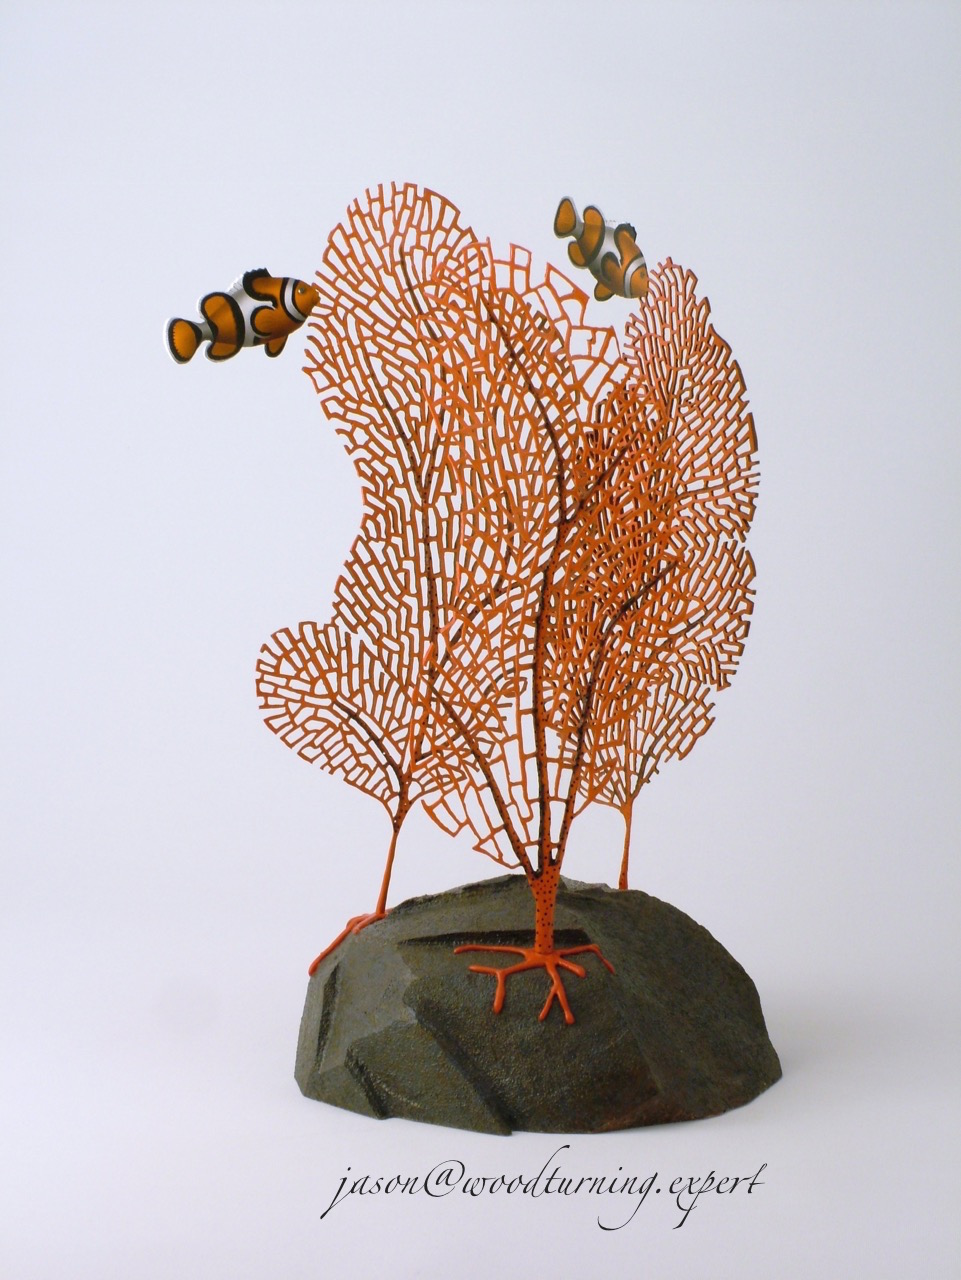 Woodturned Gorgonian Coral Sculpture